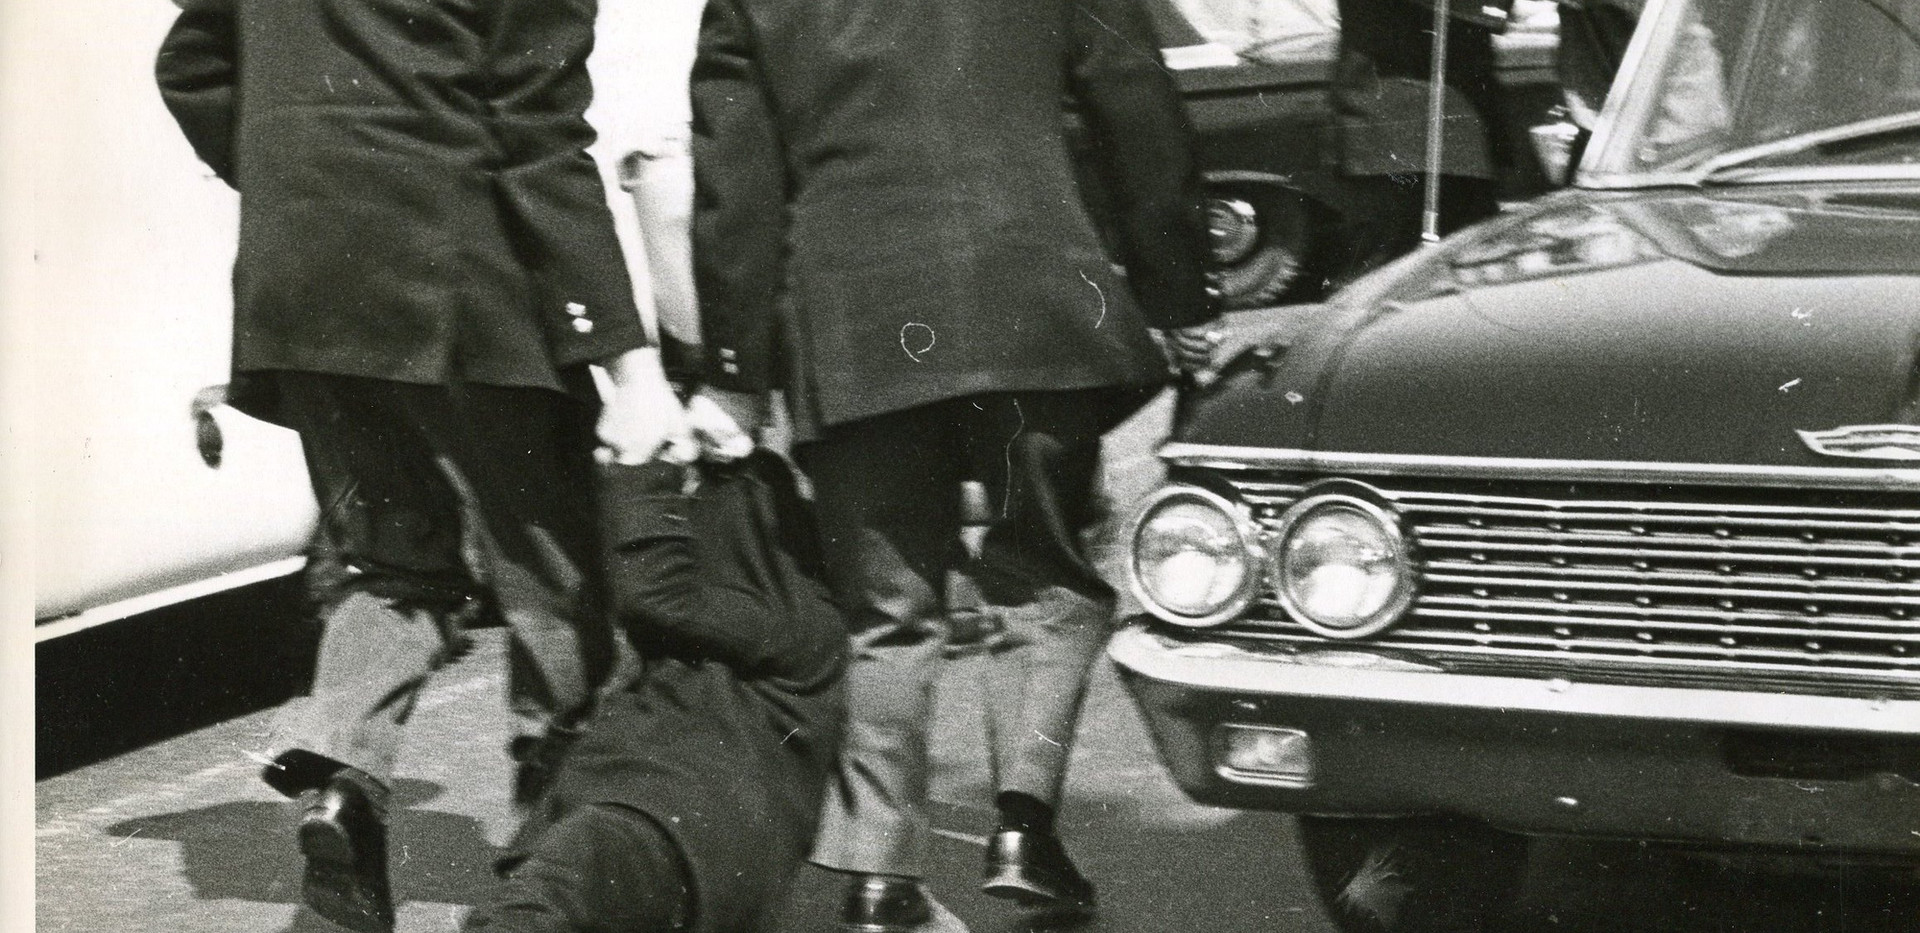 March 28, 1964